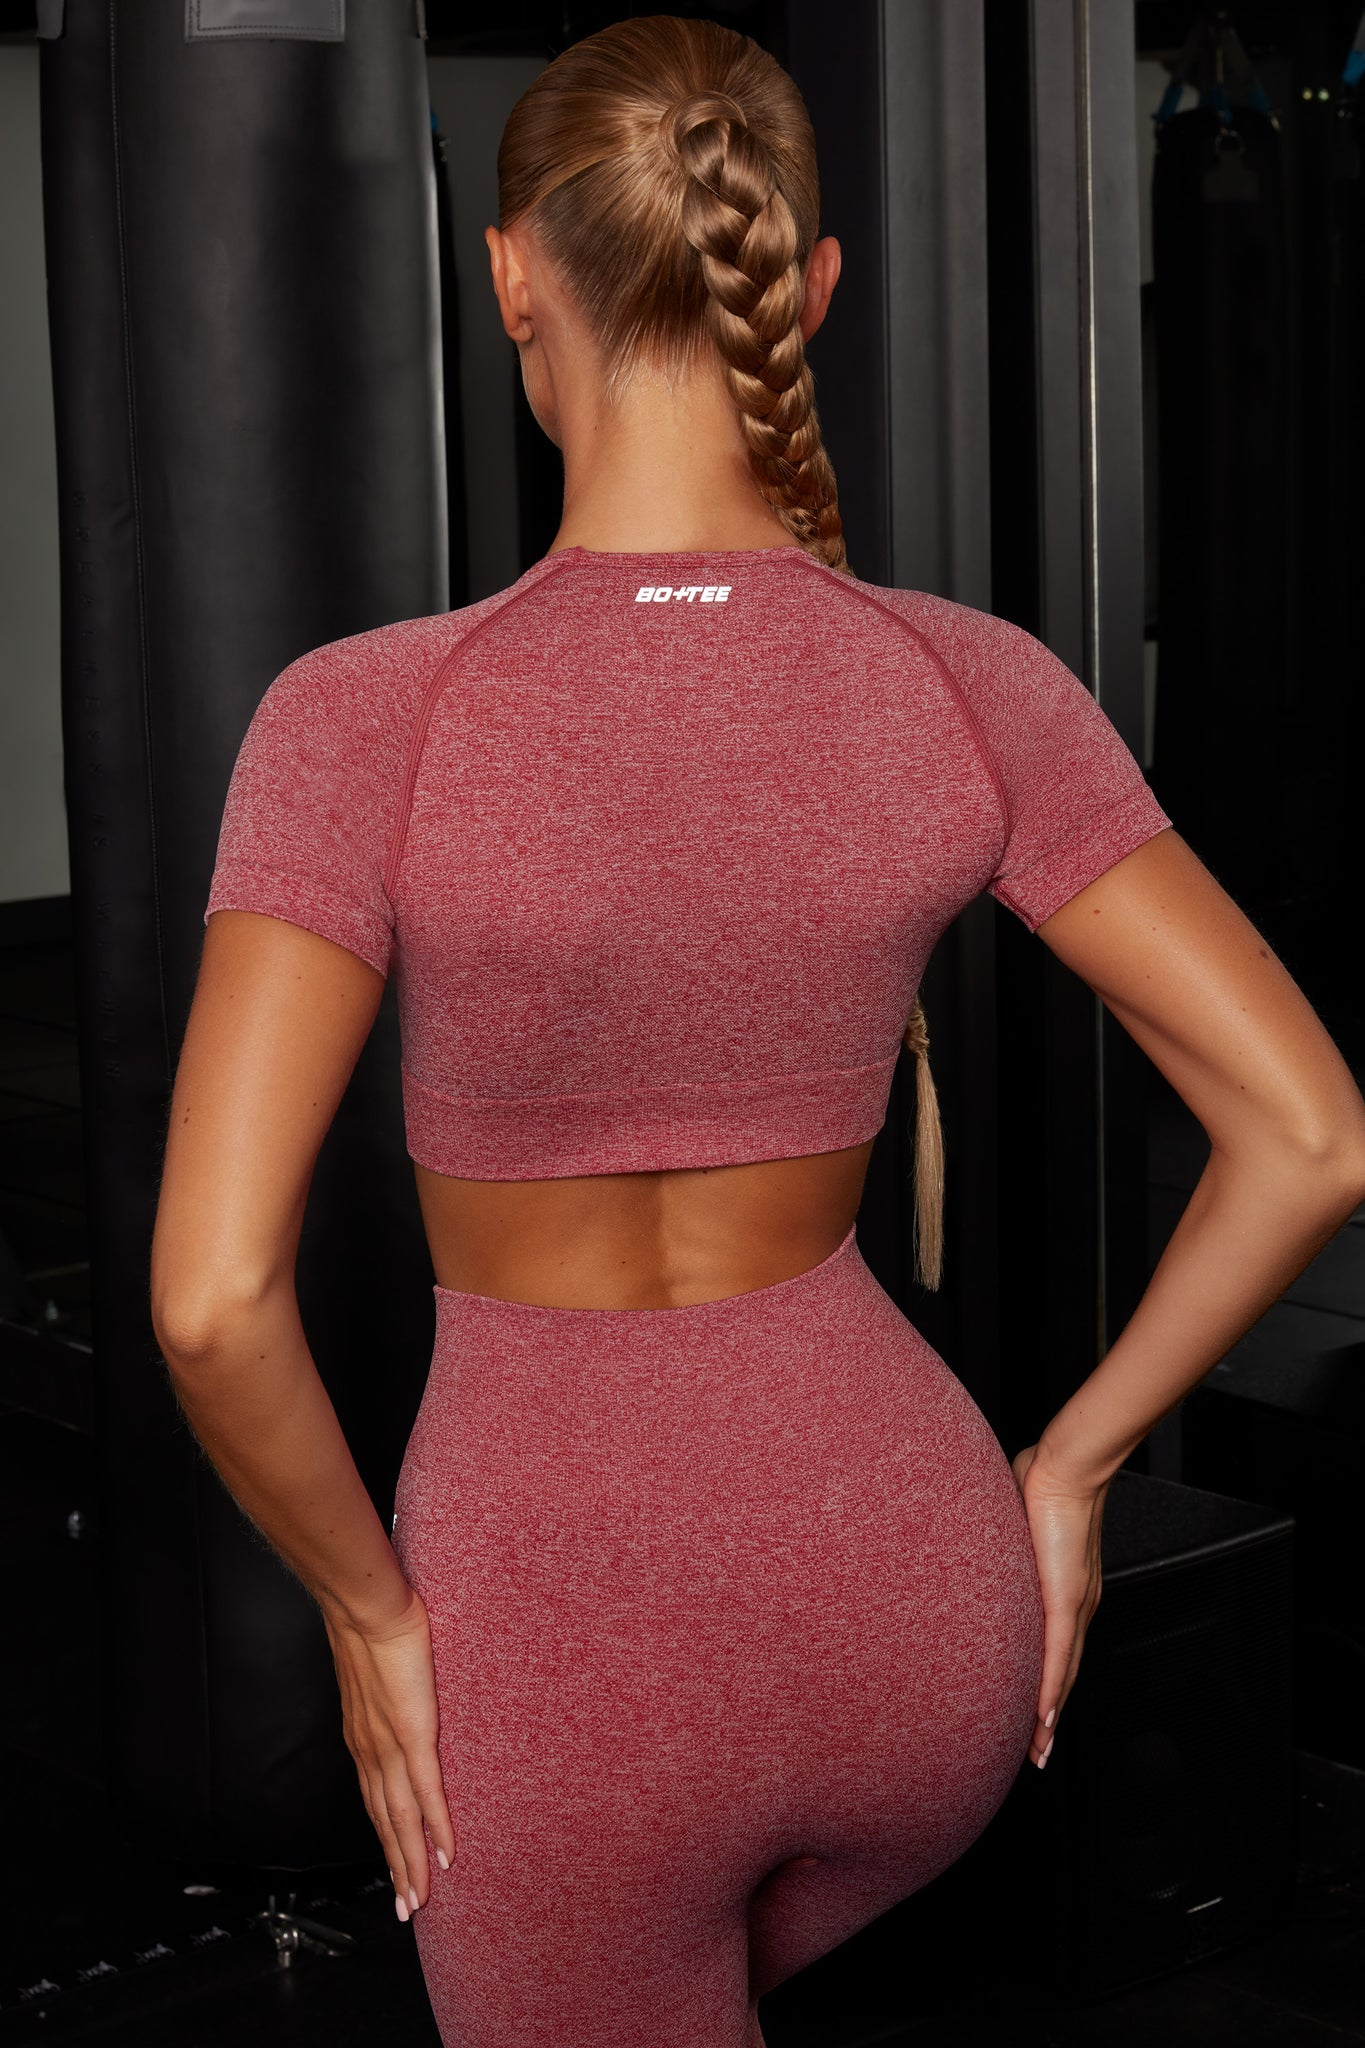 Plain red melange round neck crop top with ribbed underband, reflective branding and short sleeves. Image 3 of 6.